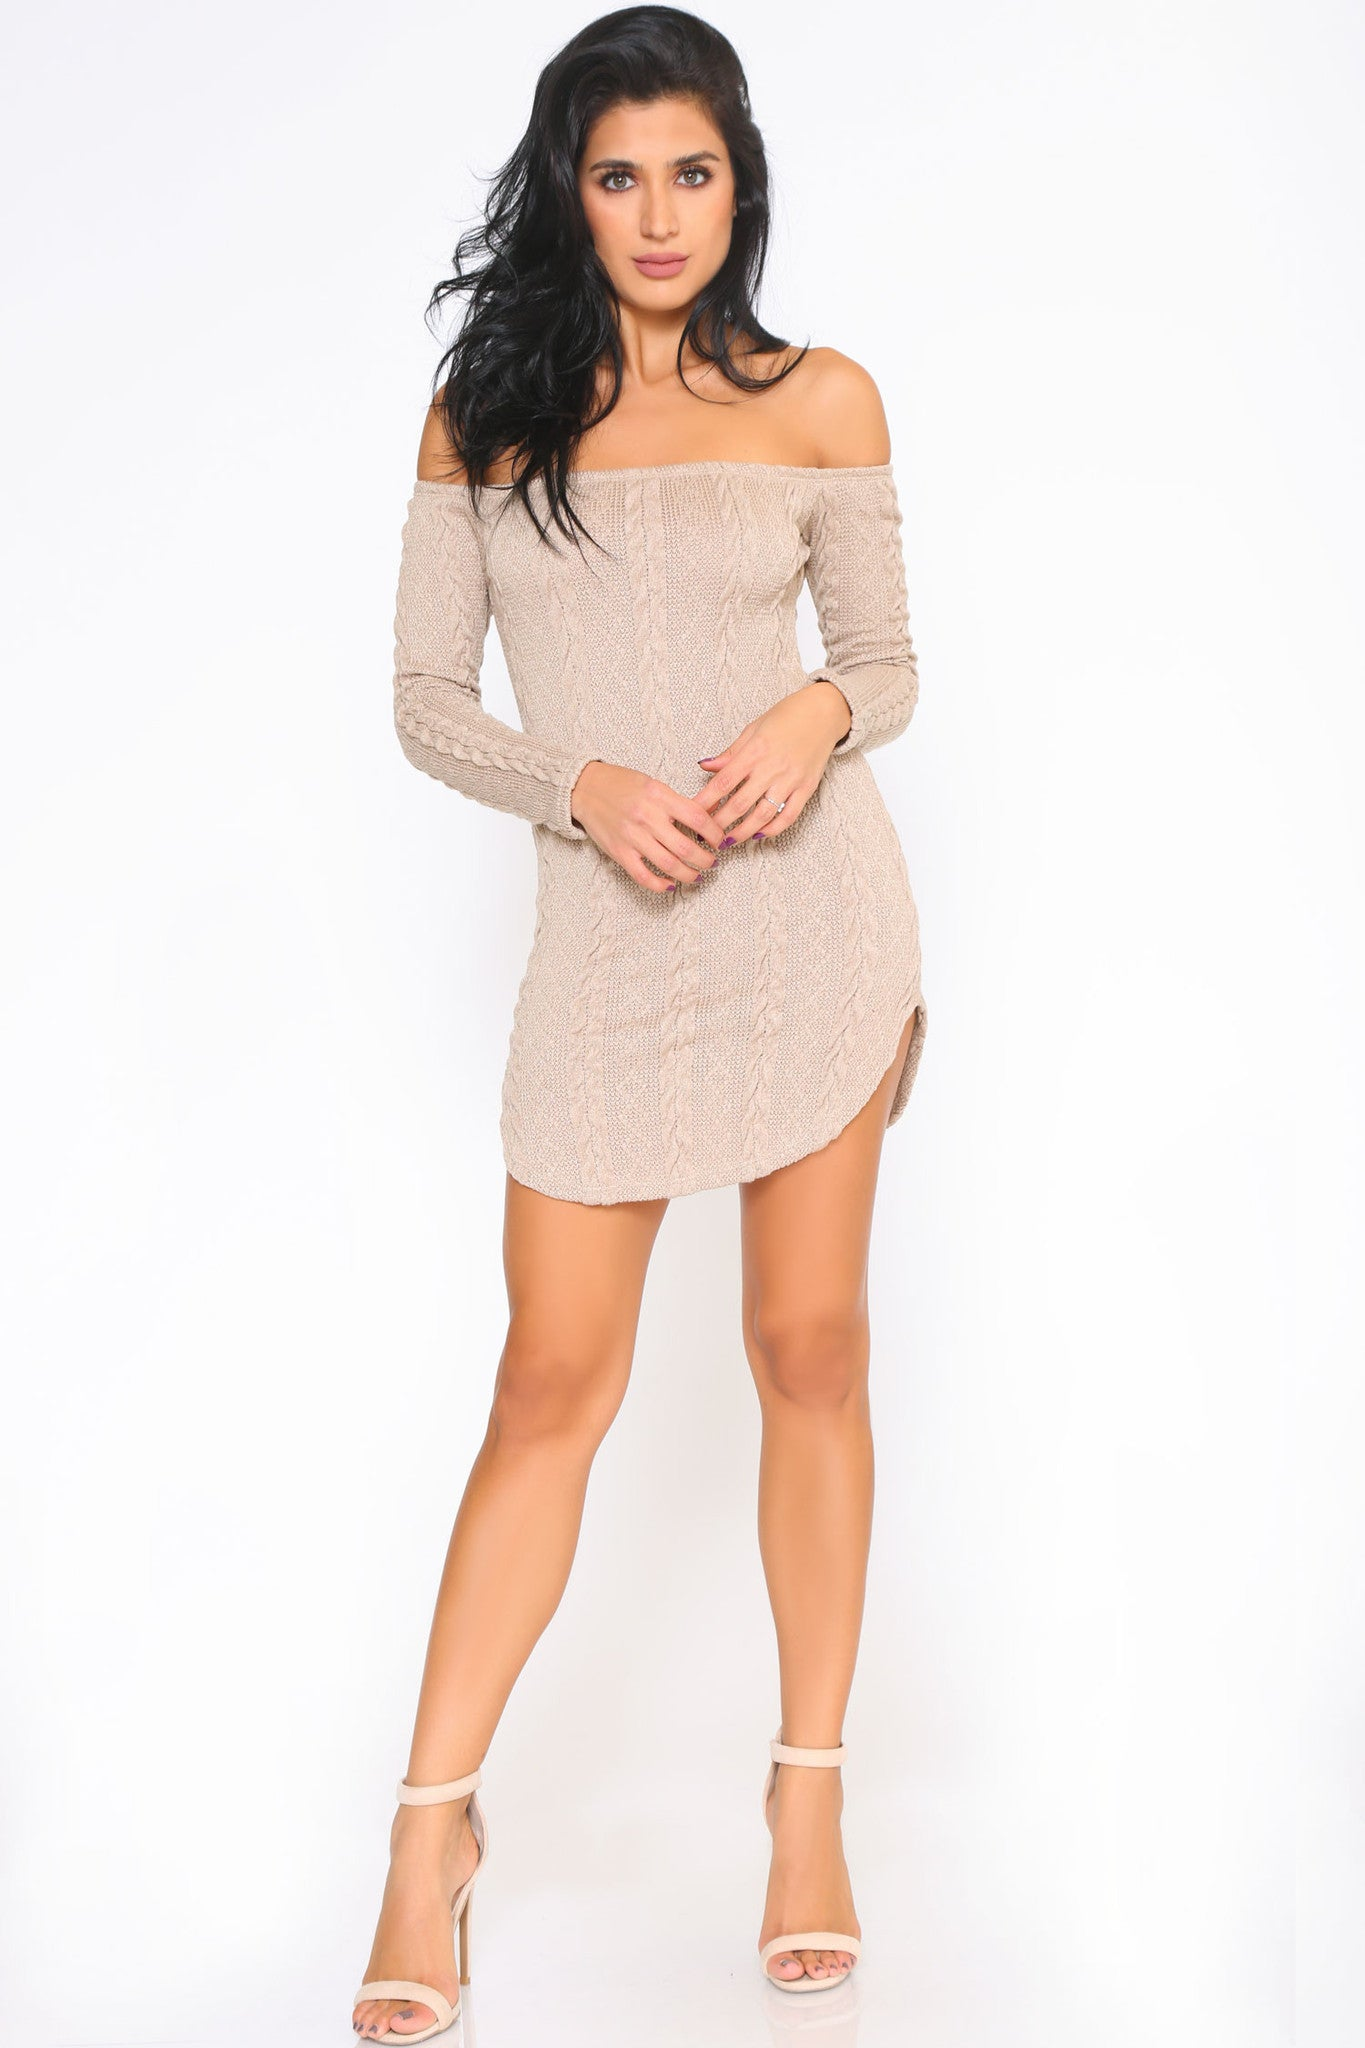 YVETTE DRESS - Glam Envy - 1